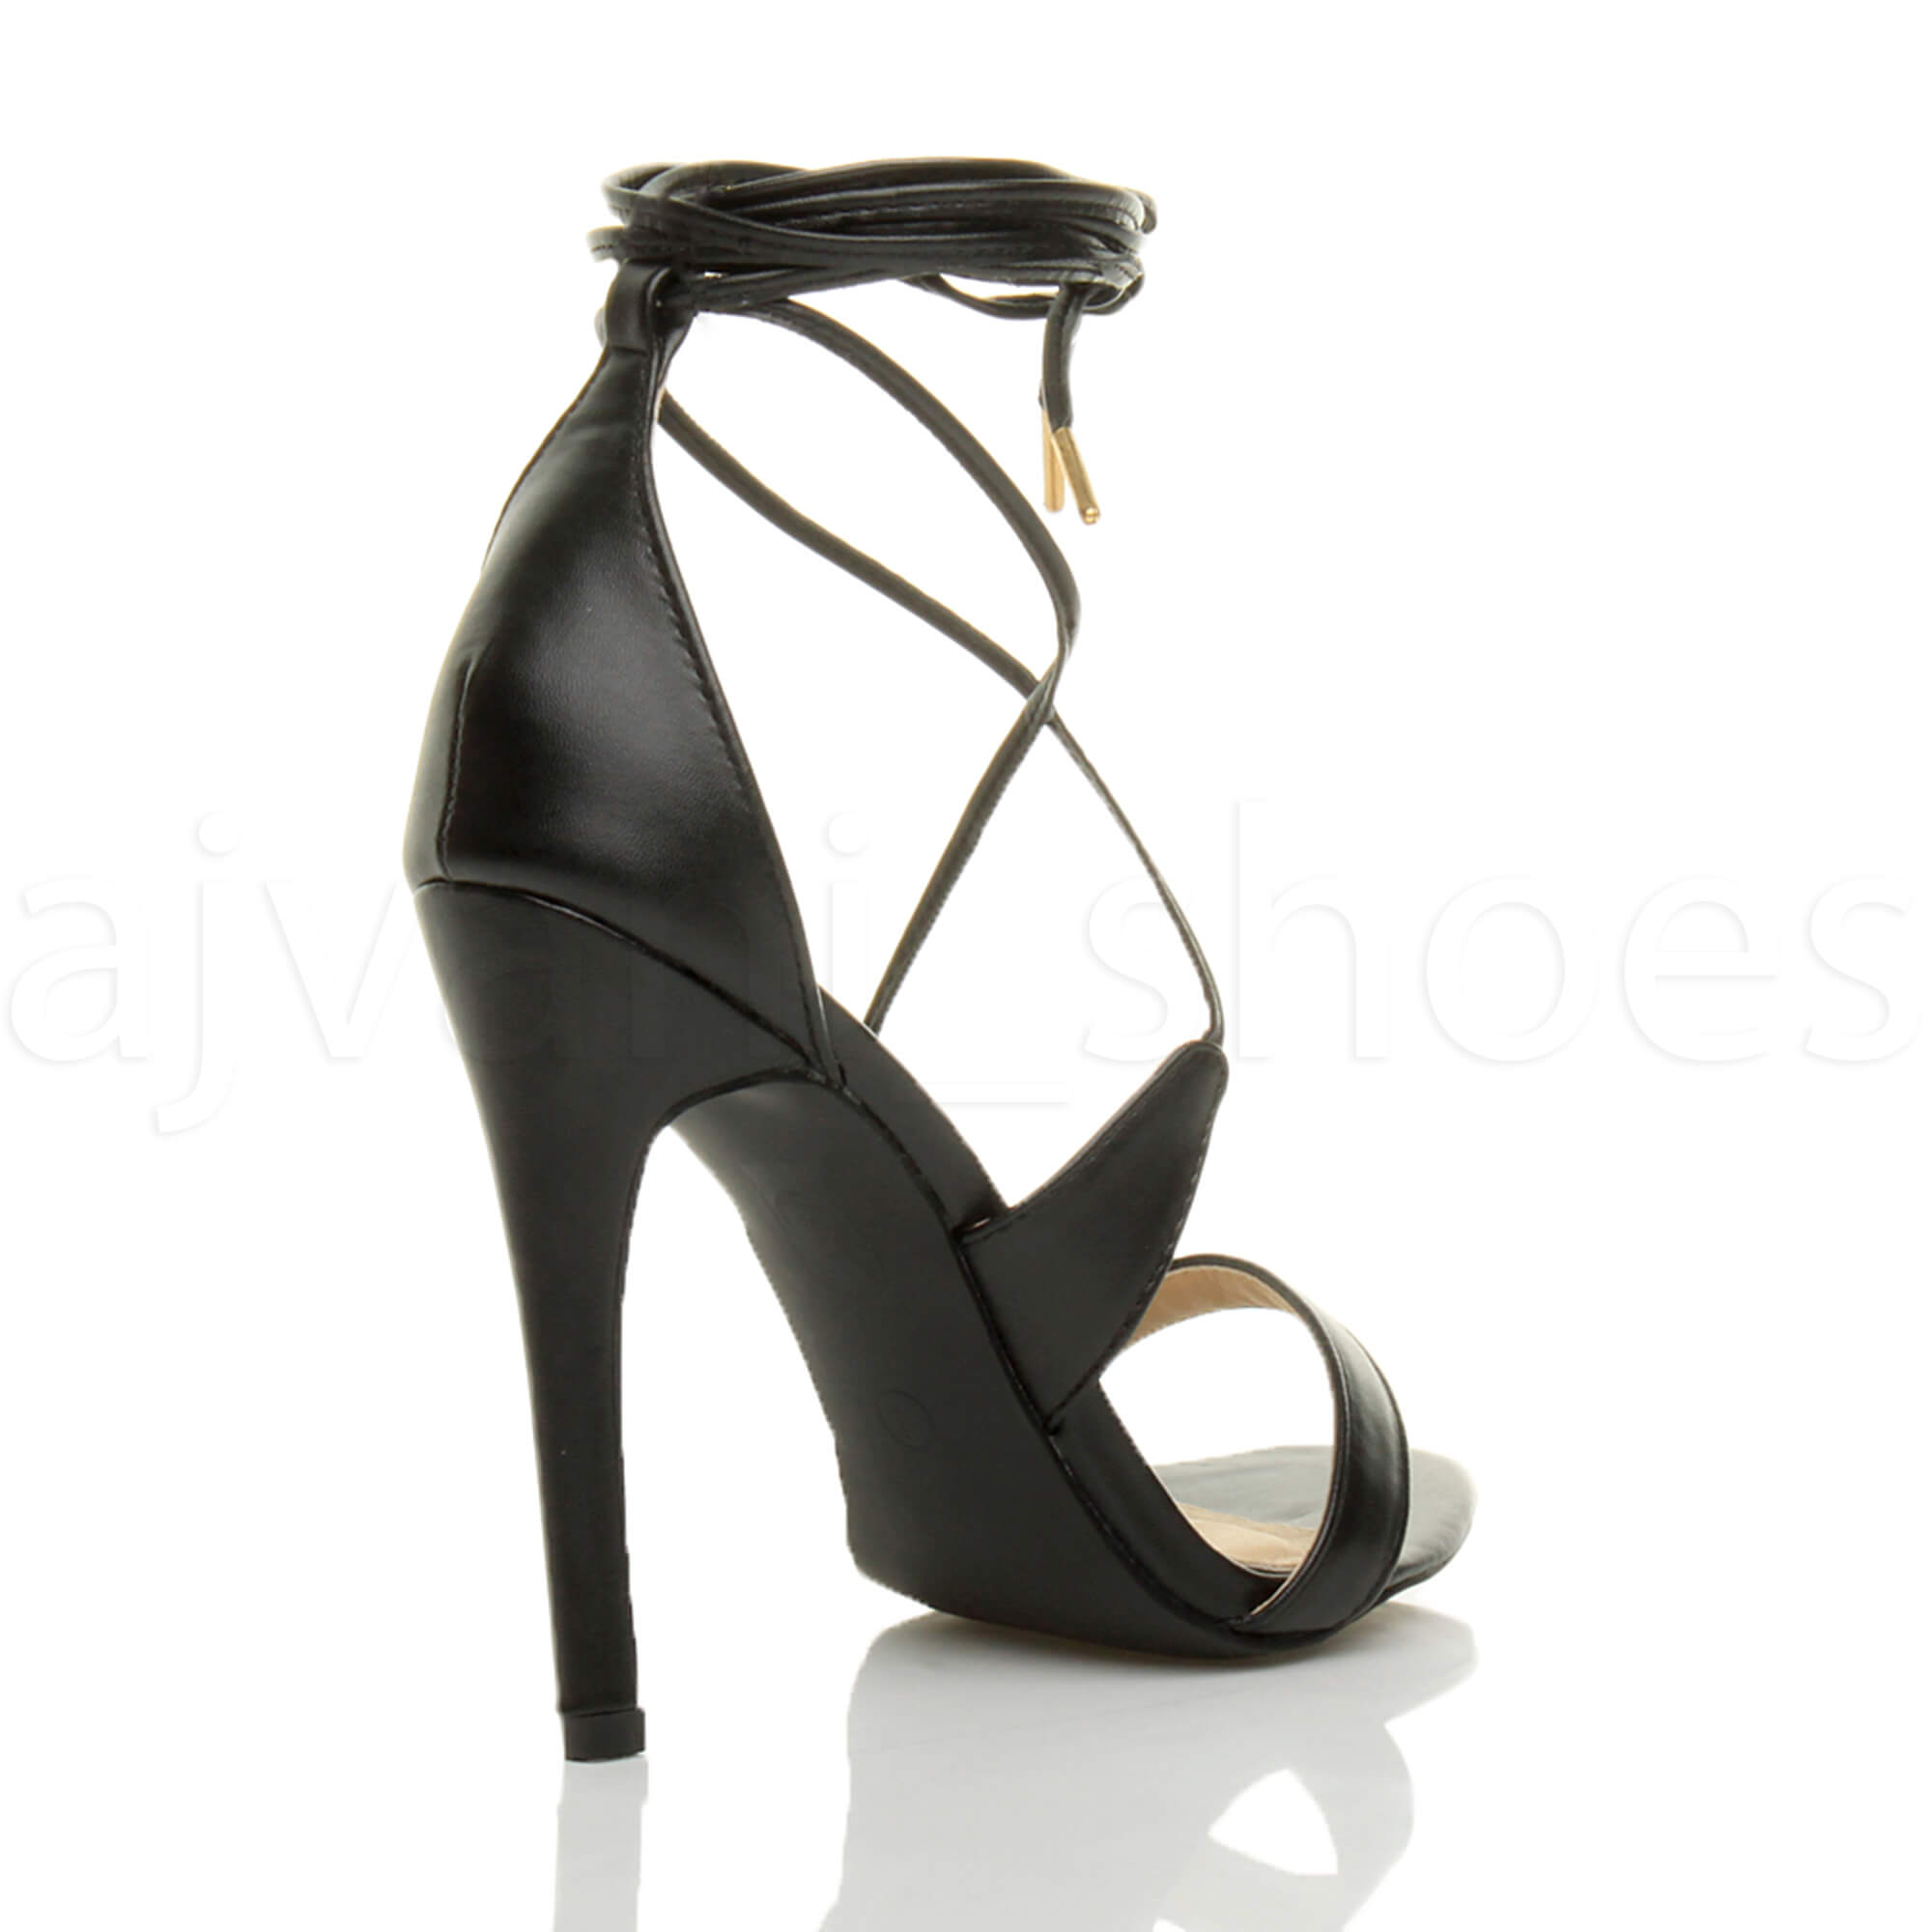 WOMENS-LADIES-HIGH-HEEL-BARELY-THERE-STRAPPY-LACE-TIE-UP-SANDALS-SHOES-SIZE thumbnail 5